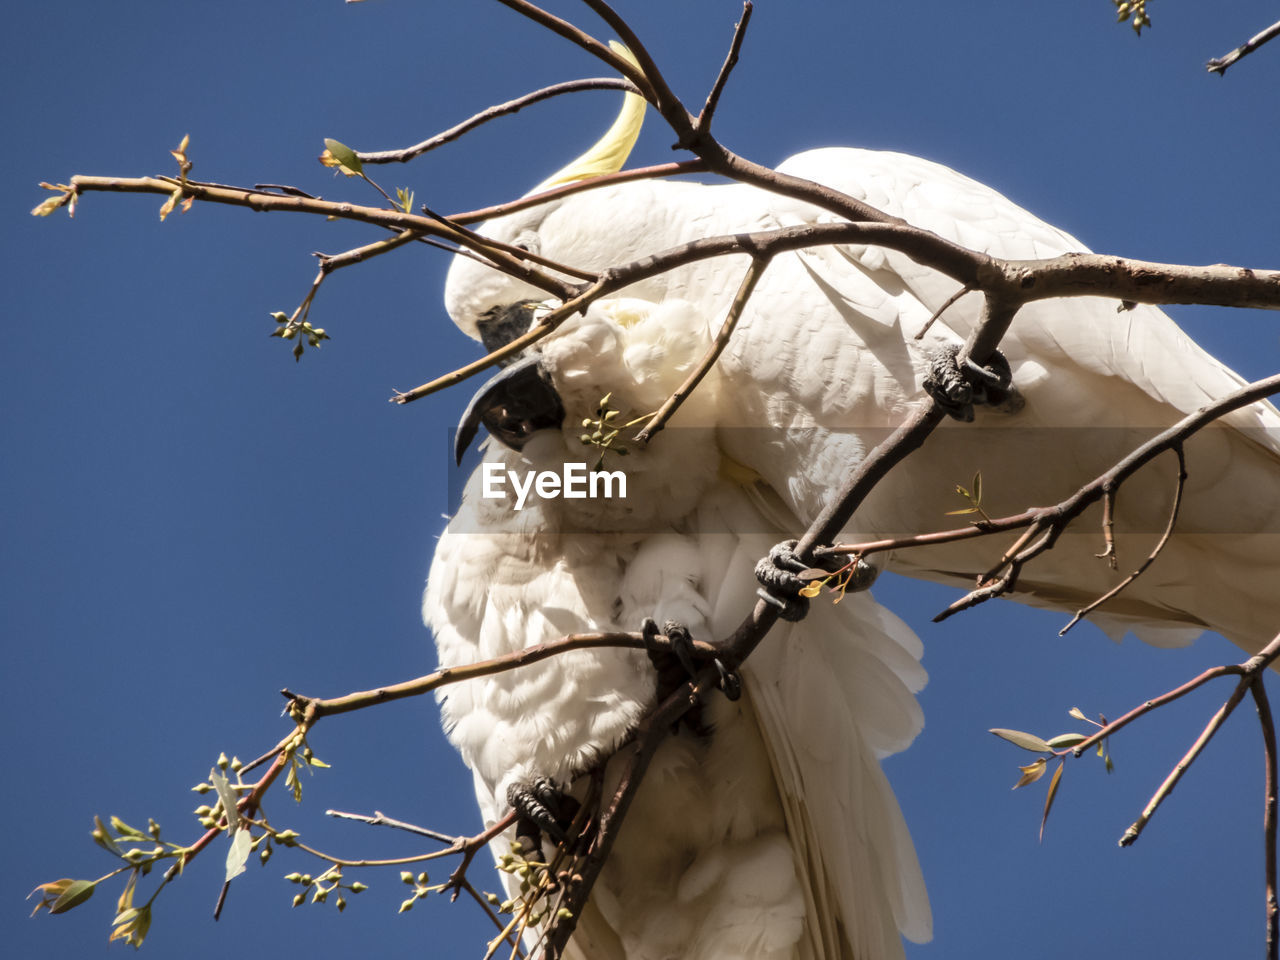 sky, animal themes, low angle view, animal, one animal, animal wildlife, no people, branch, vertebrate, nature, tree, plant, day, animals in the wild, sunlight, clear sky, bird, white color, close-up, outdoors, animal head, herbivorous